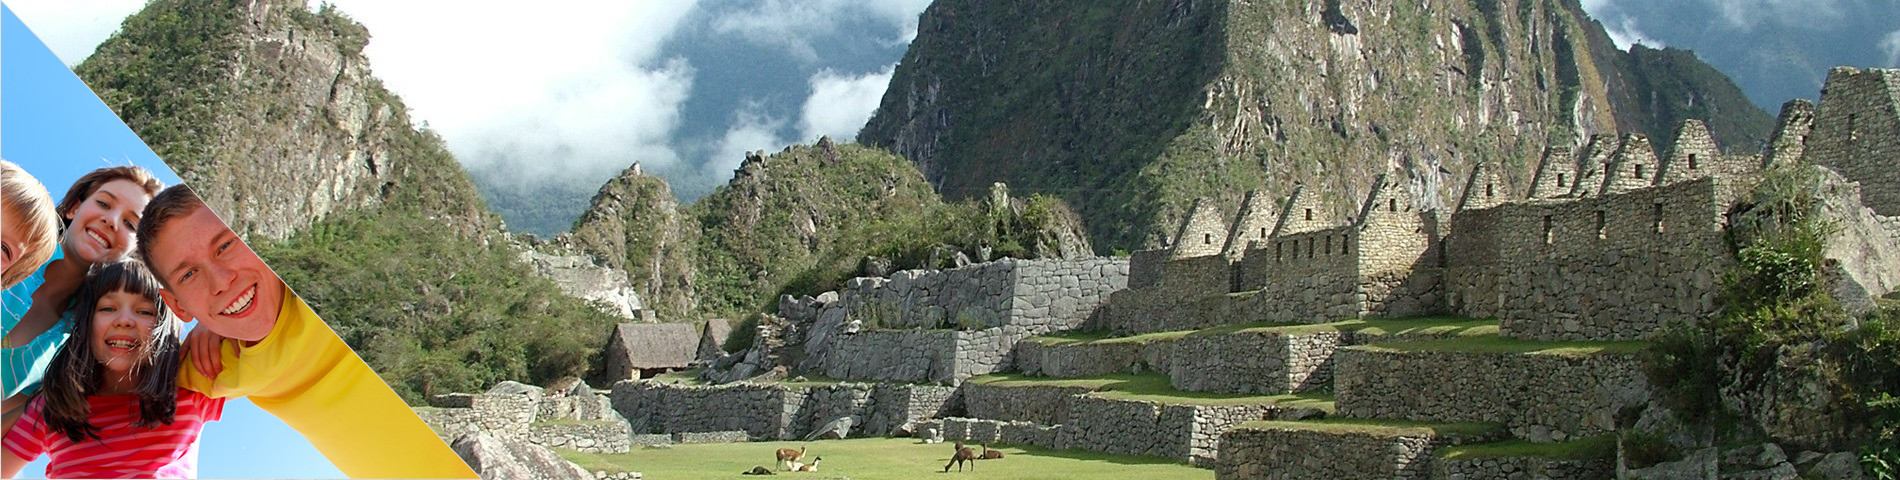 cuzco senior singles Are there senior-friendly tours to machu picchu  are there senior  all three tours reach machu picchu by train from cuzco or urubamba to the.